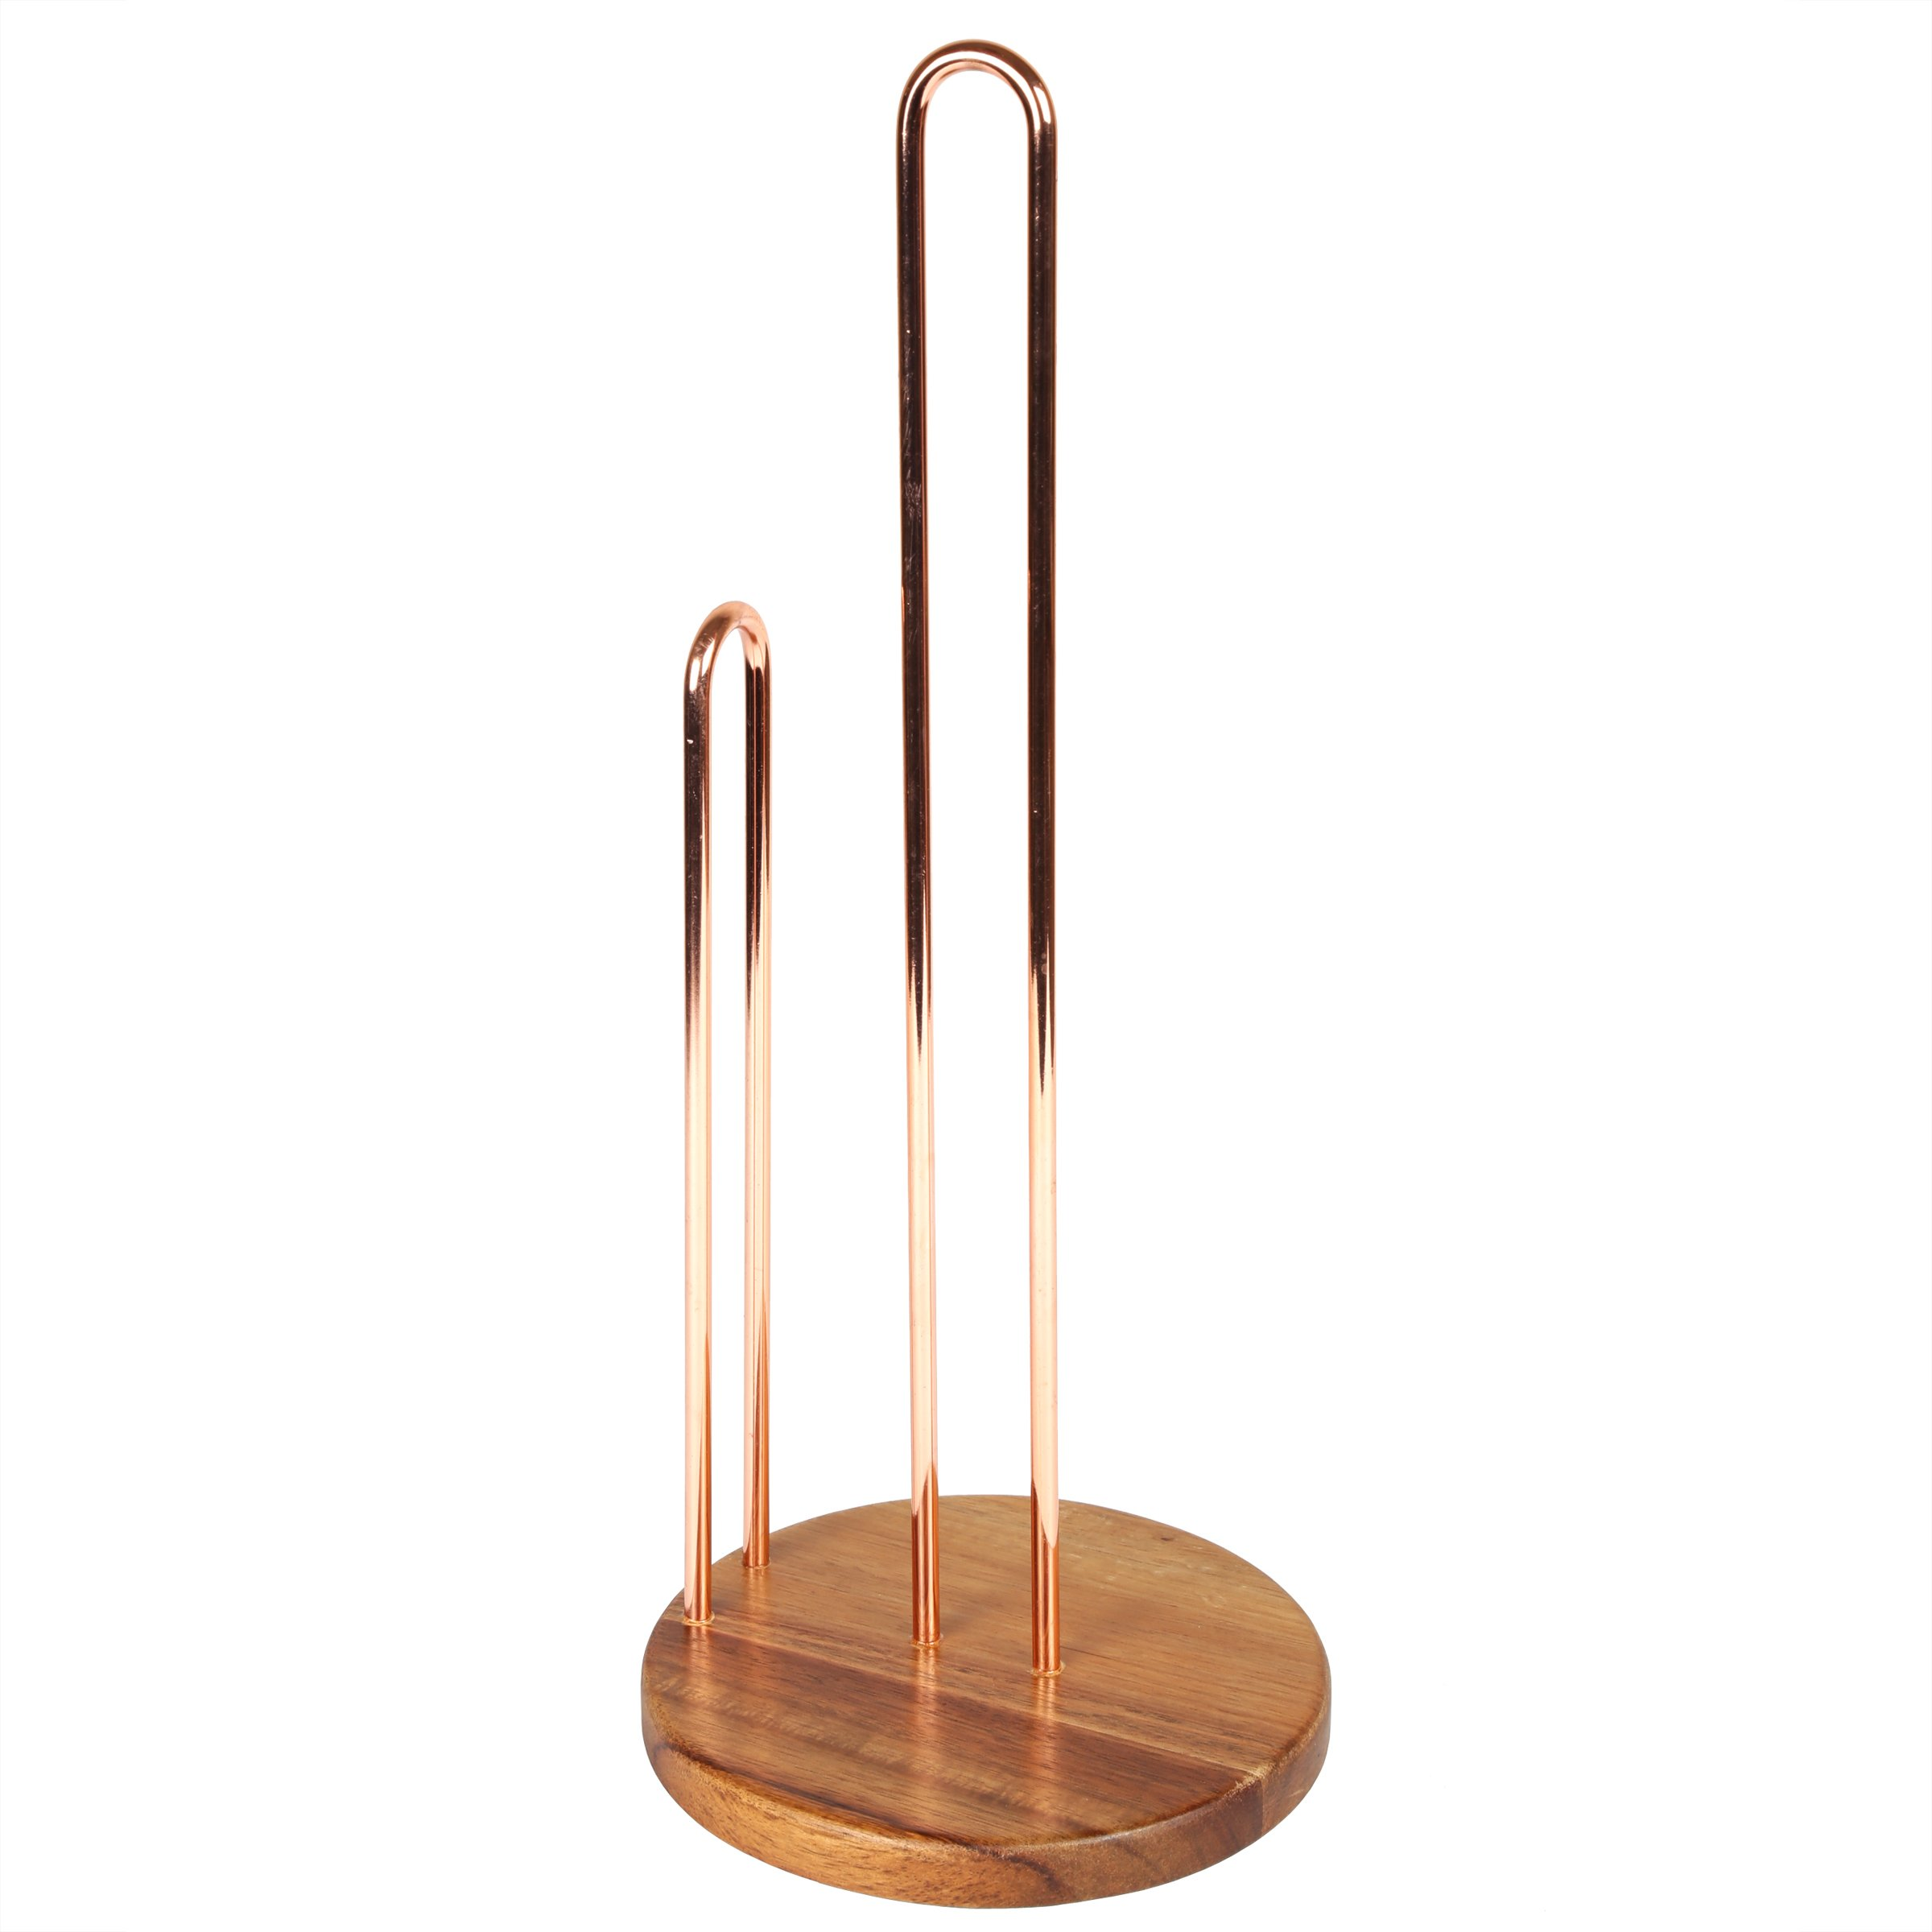 Creative Home Deluxe Acacia Wood & Wire Paper Towel Holder, Copper